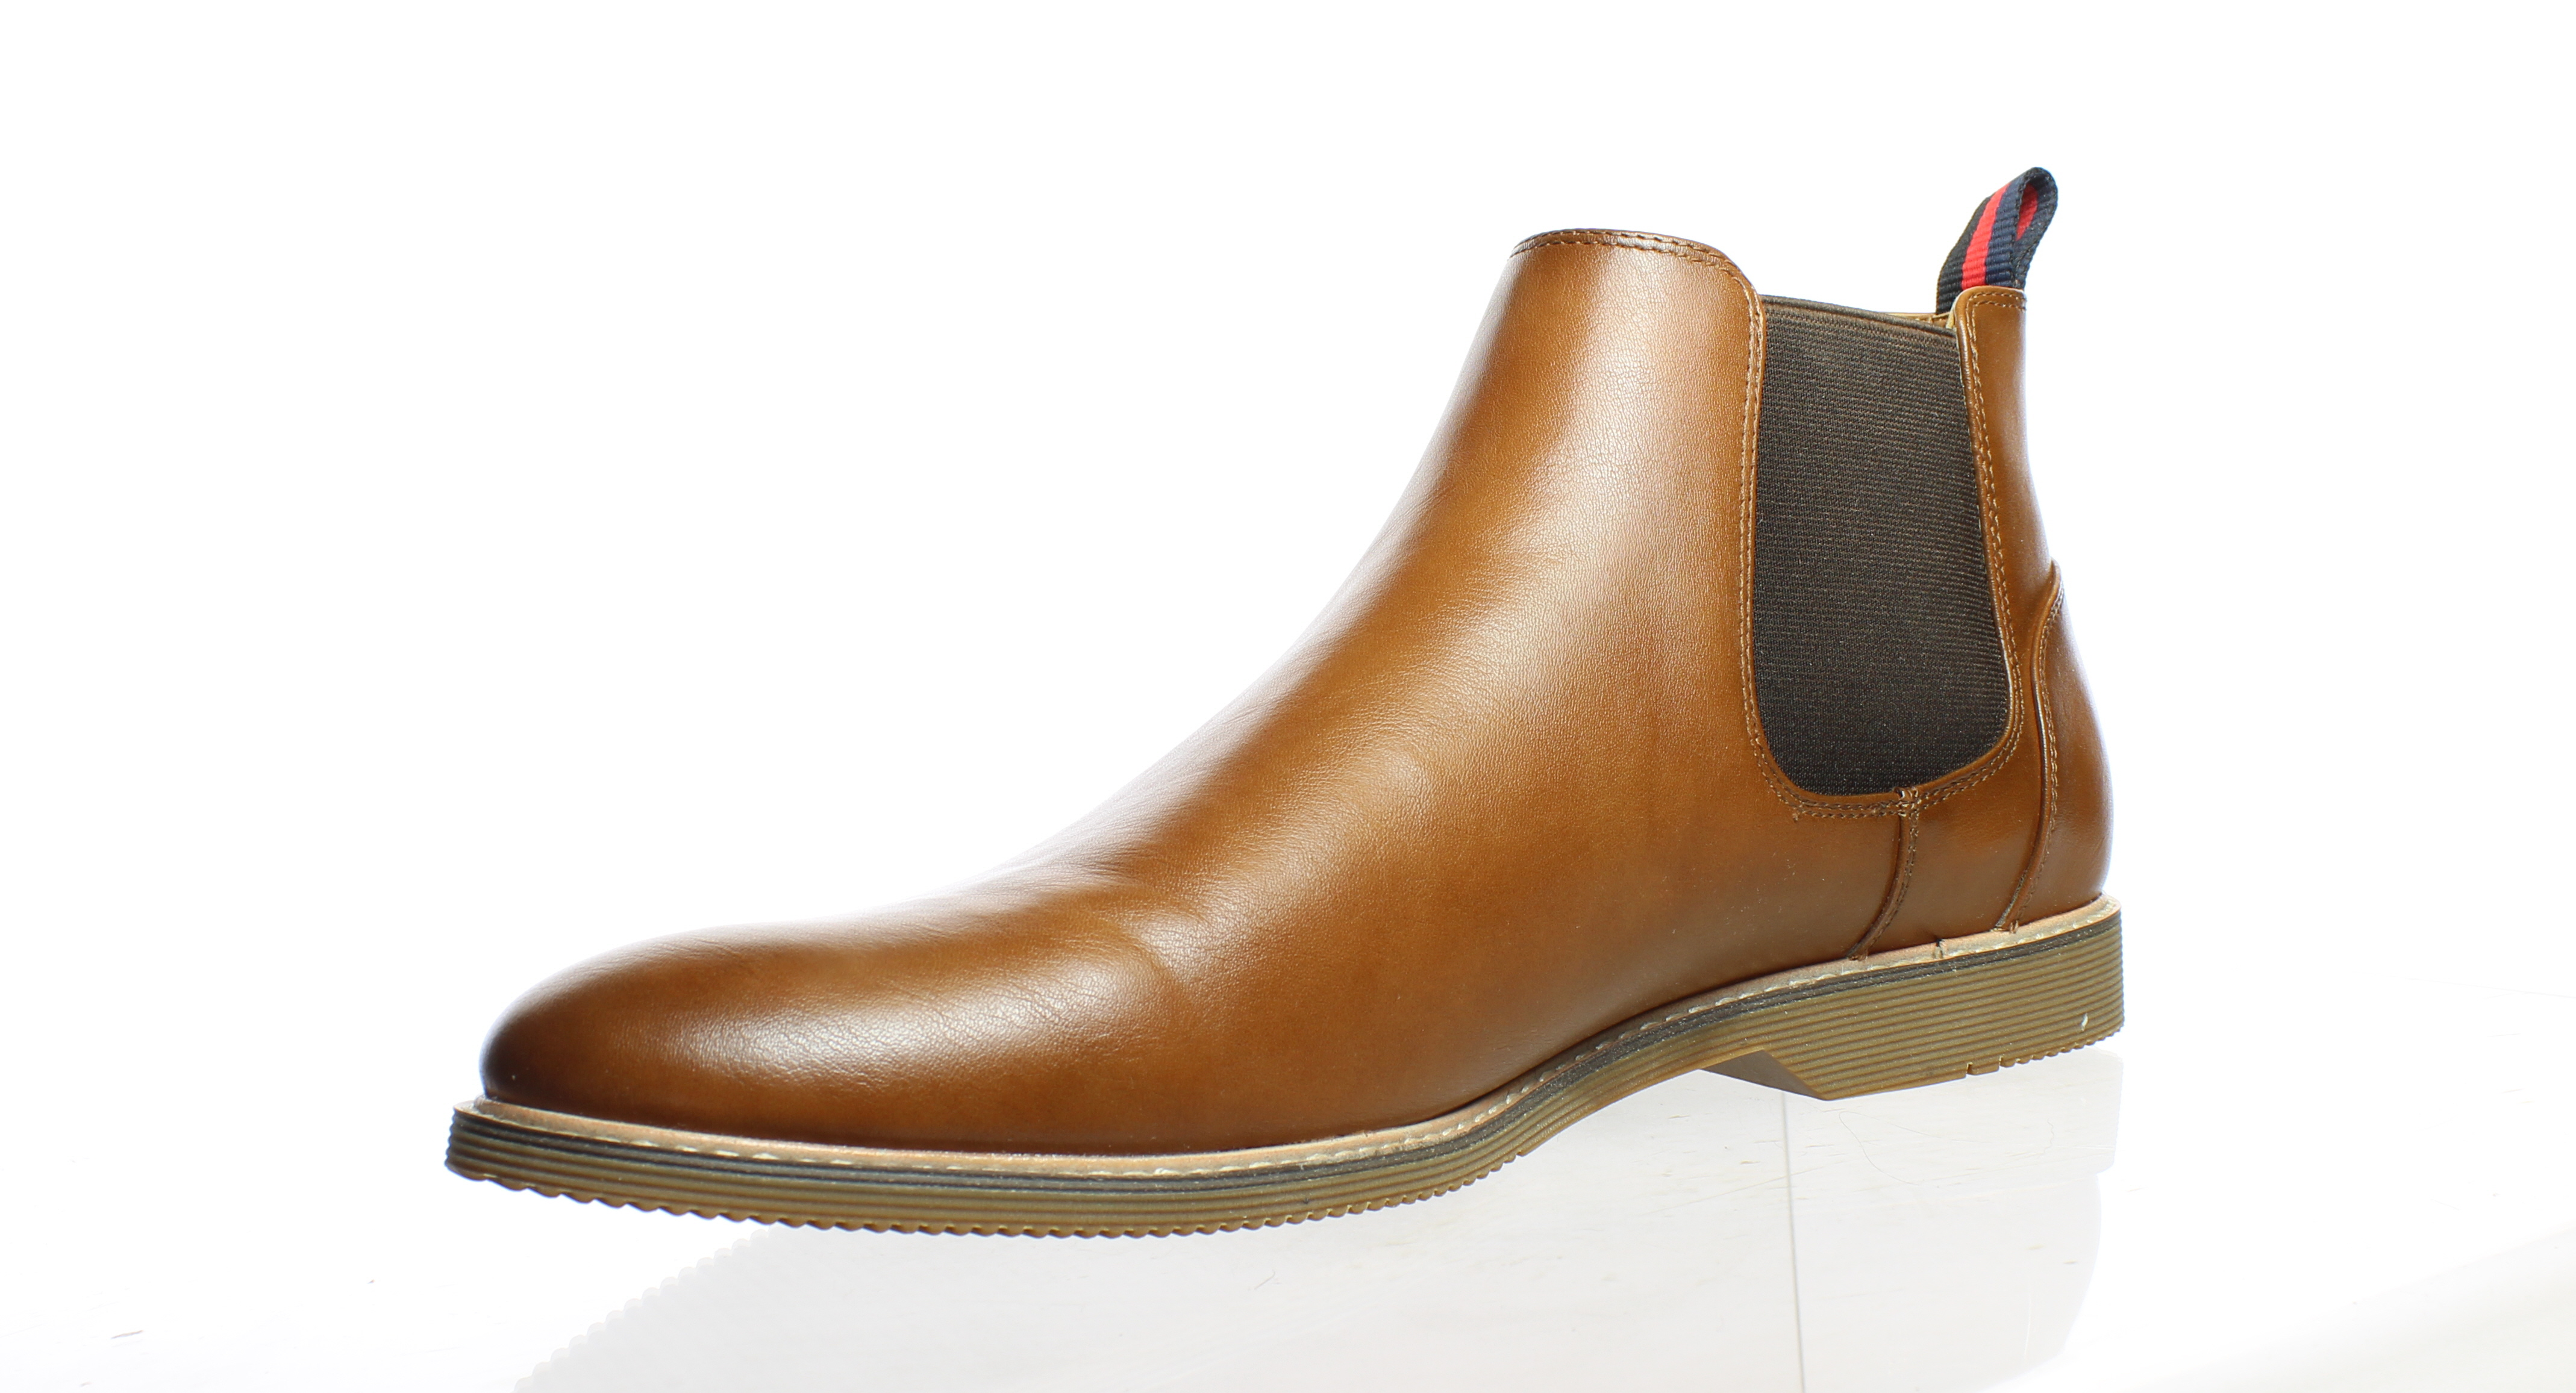 768a7f581e5 Details about Steve Madden Mens Native Tan Ankle Boots Size 11 (382831)